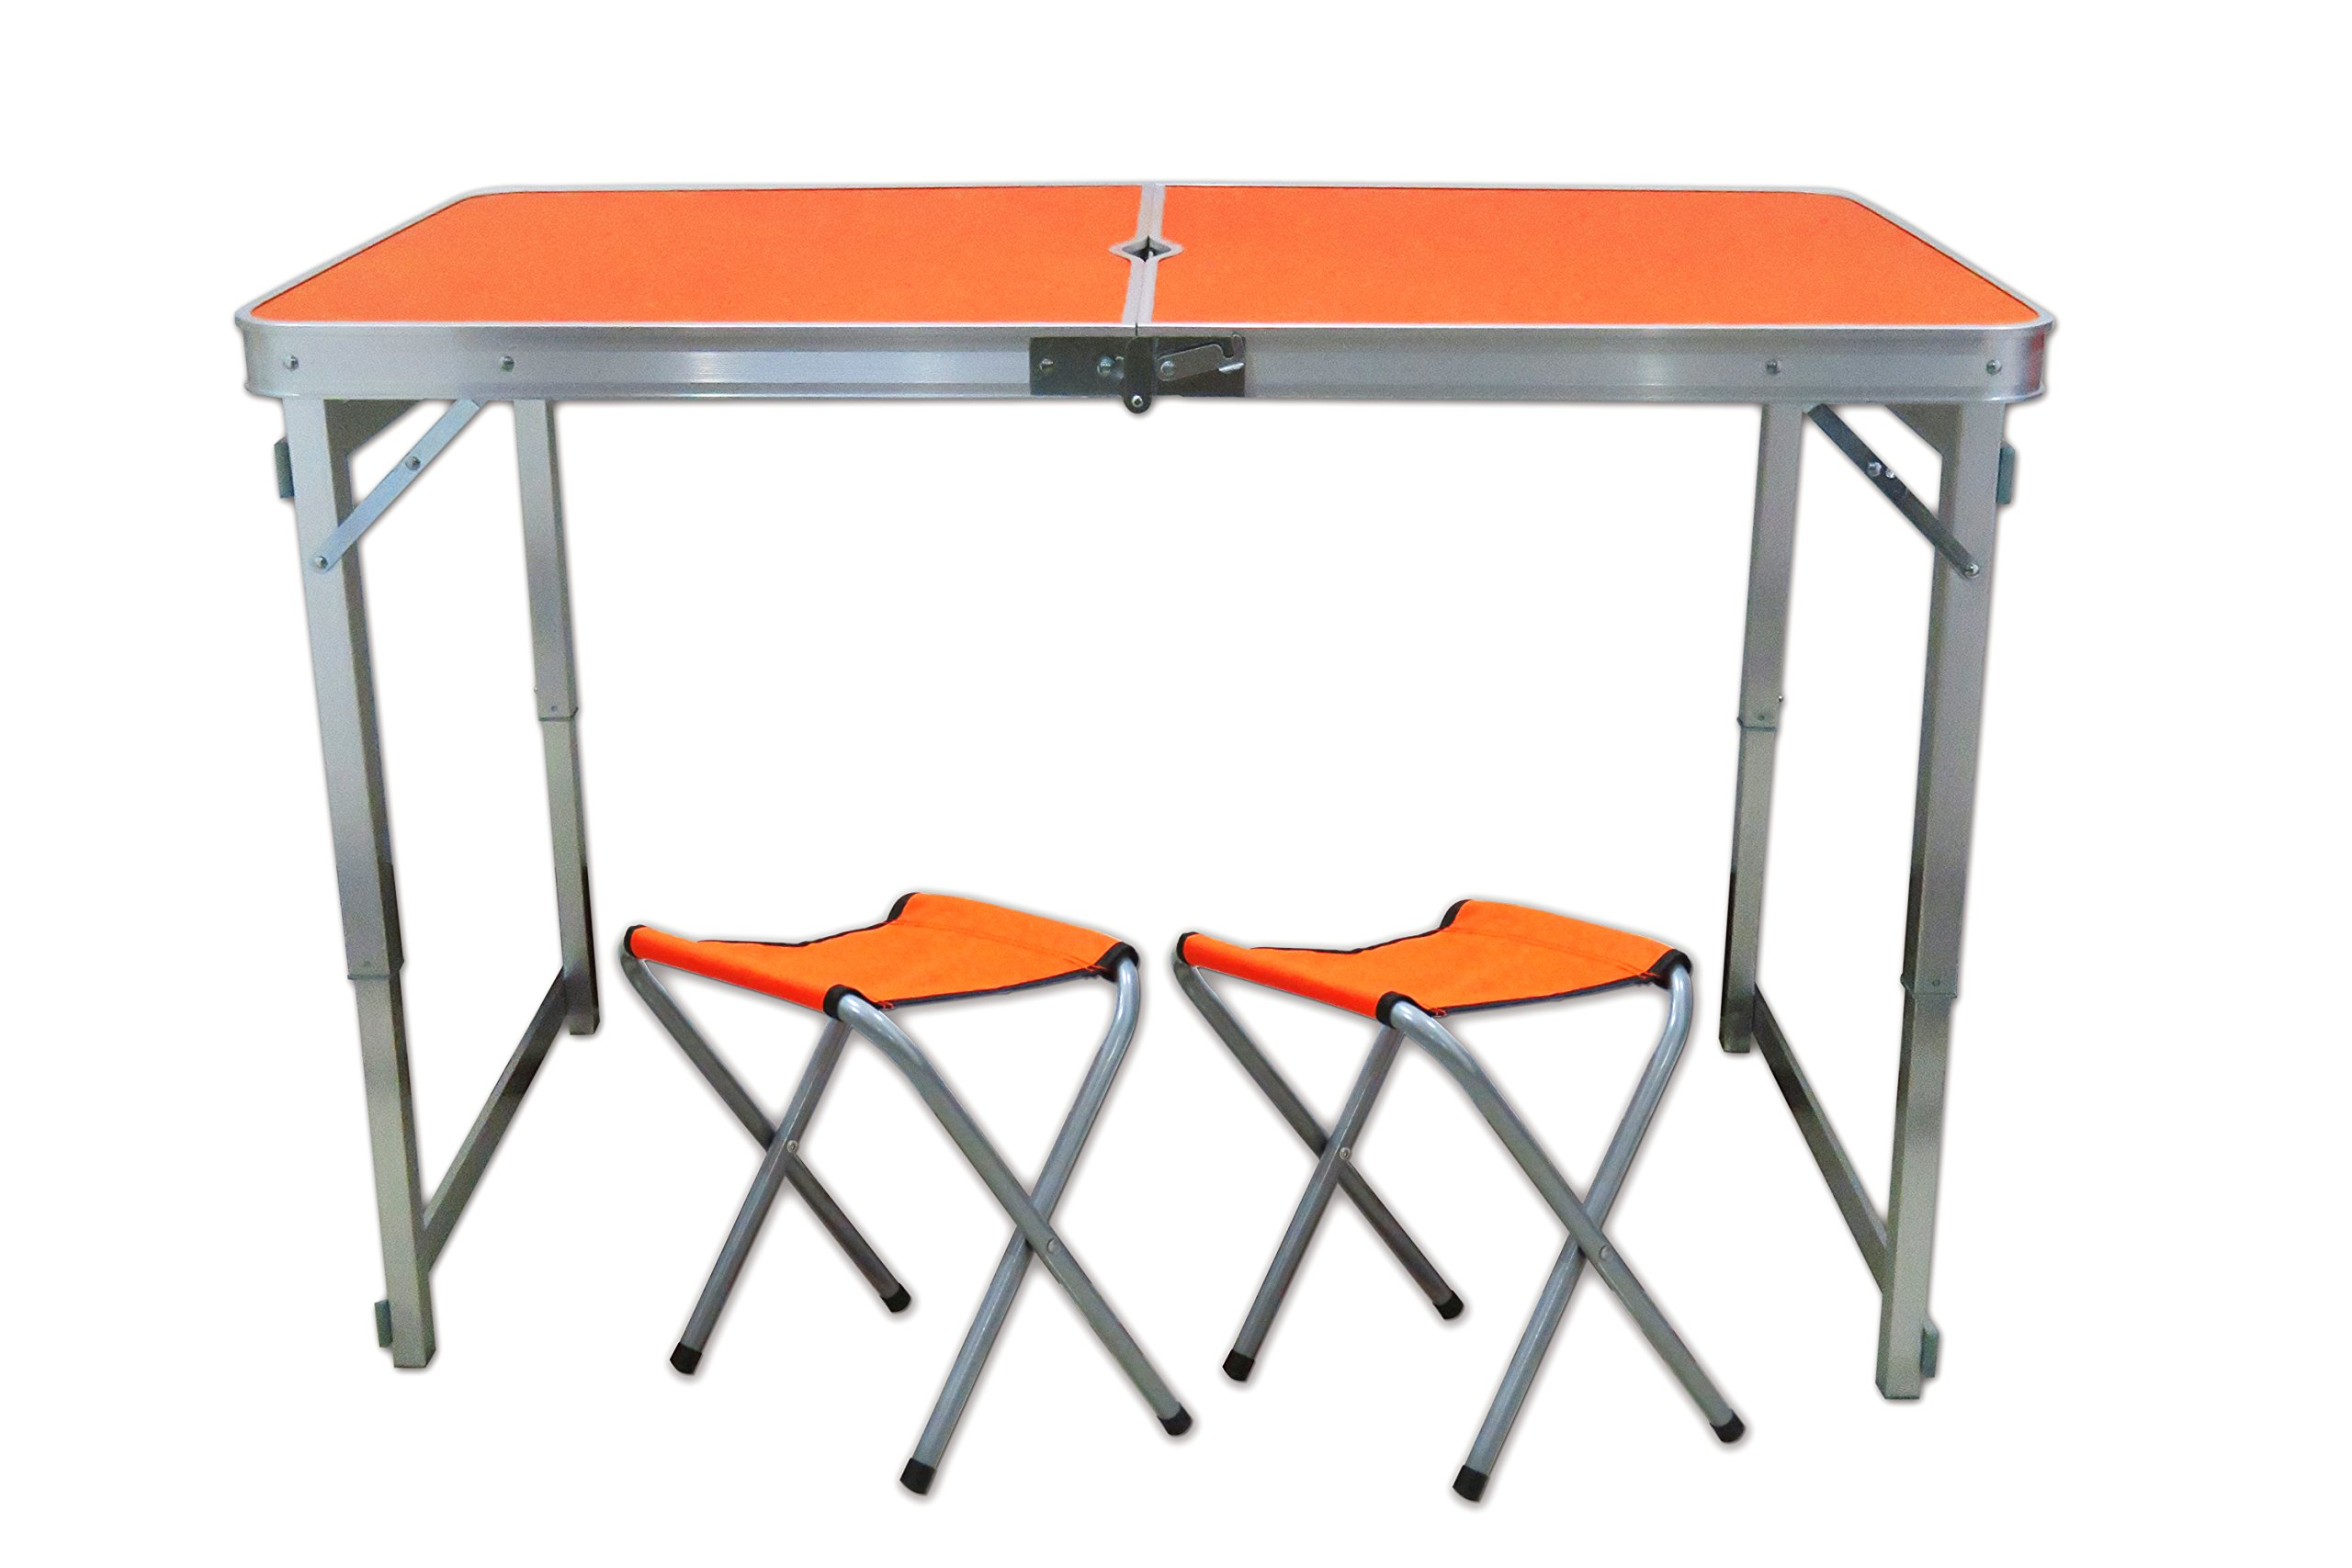 Littlefun Folding Adjustable Height Table Aluminum for Portable Camping Picnic Family Party with 2 Chairs (Jacinth)